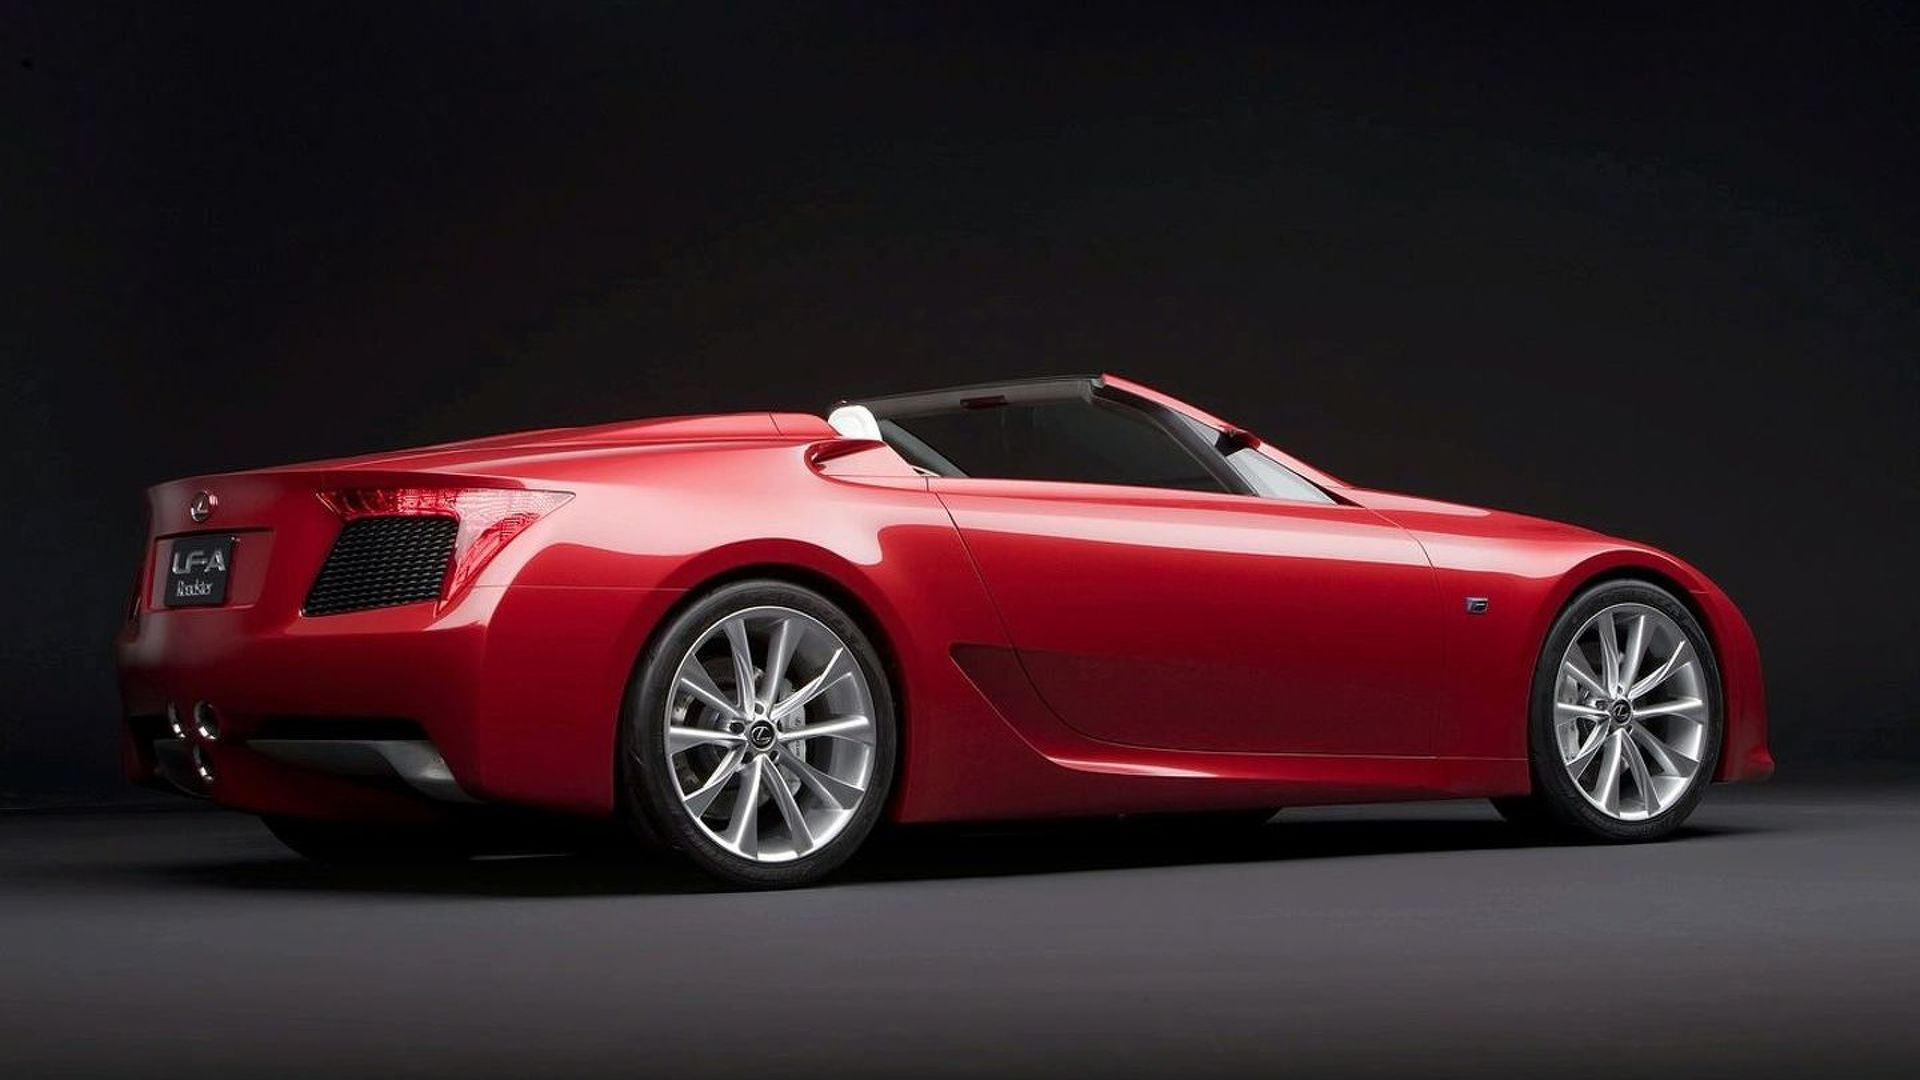 Lexus Lfa Roadster Axed Toyota Supra Under Development Report